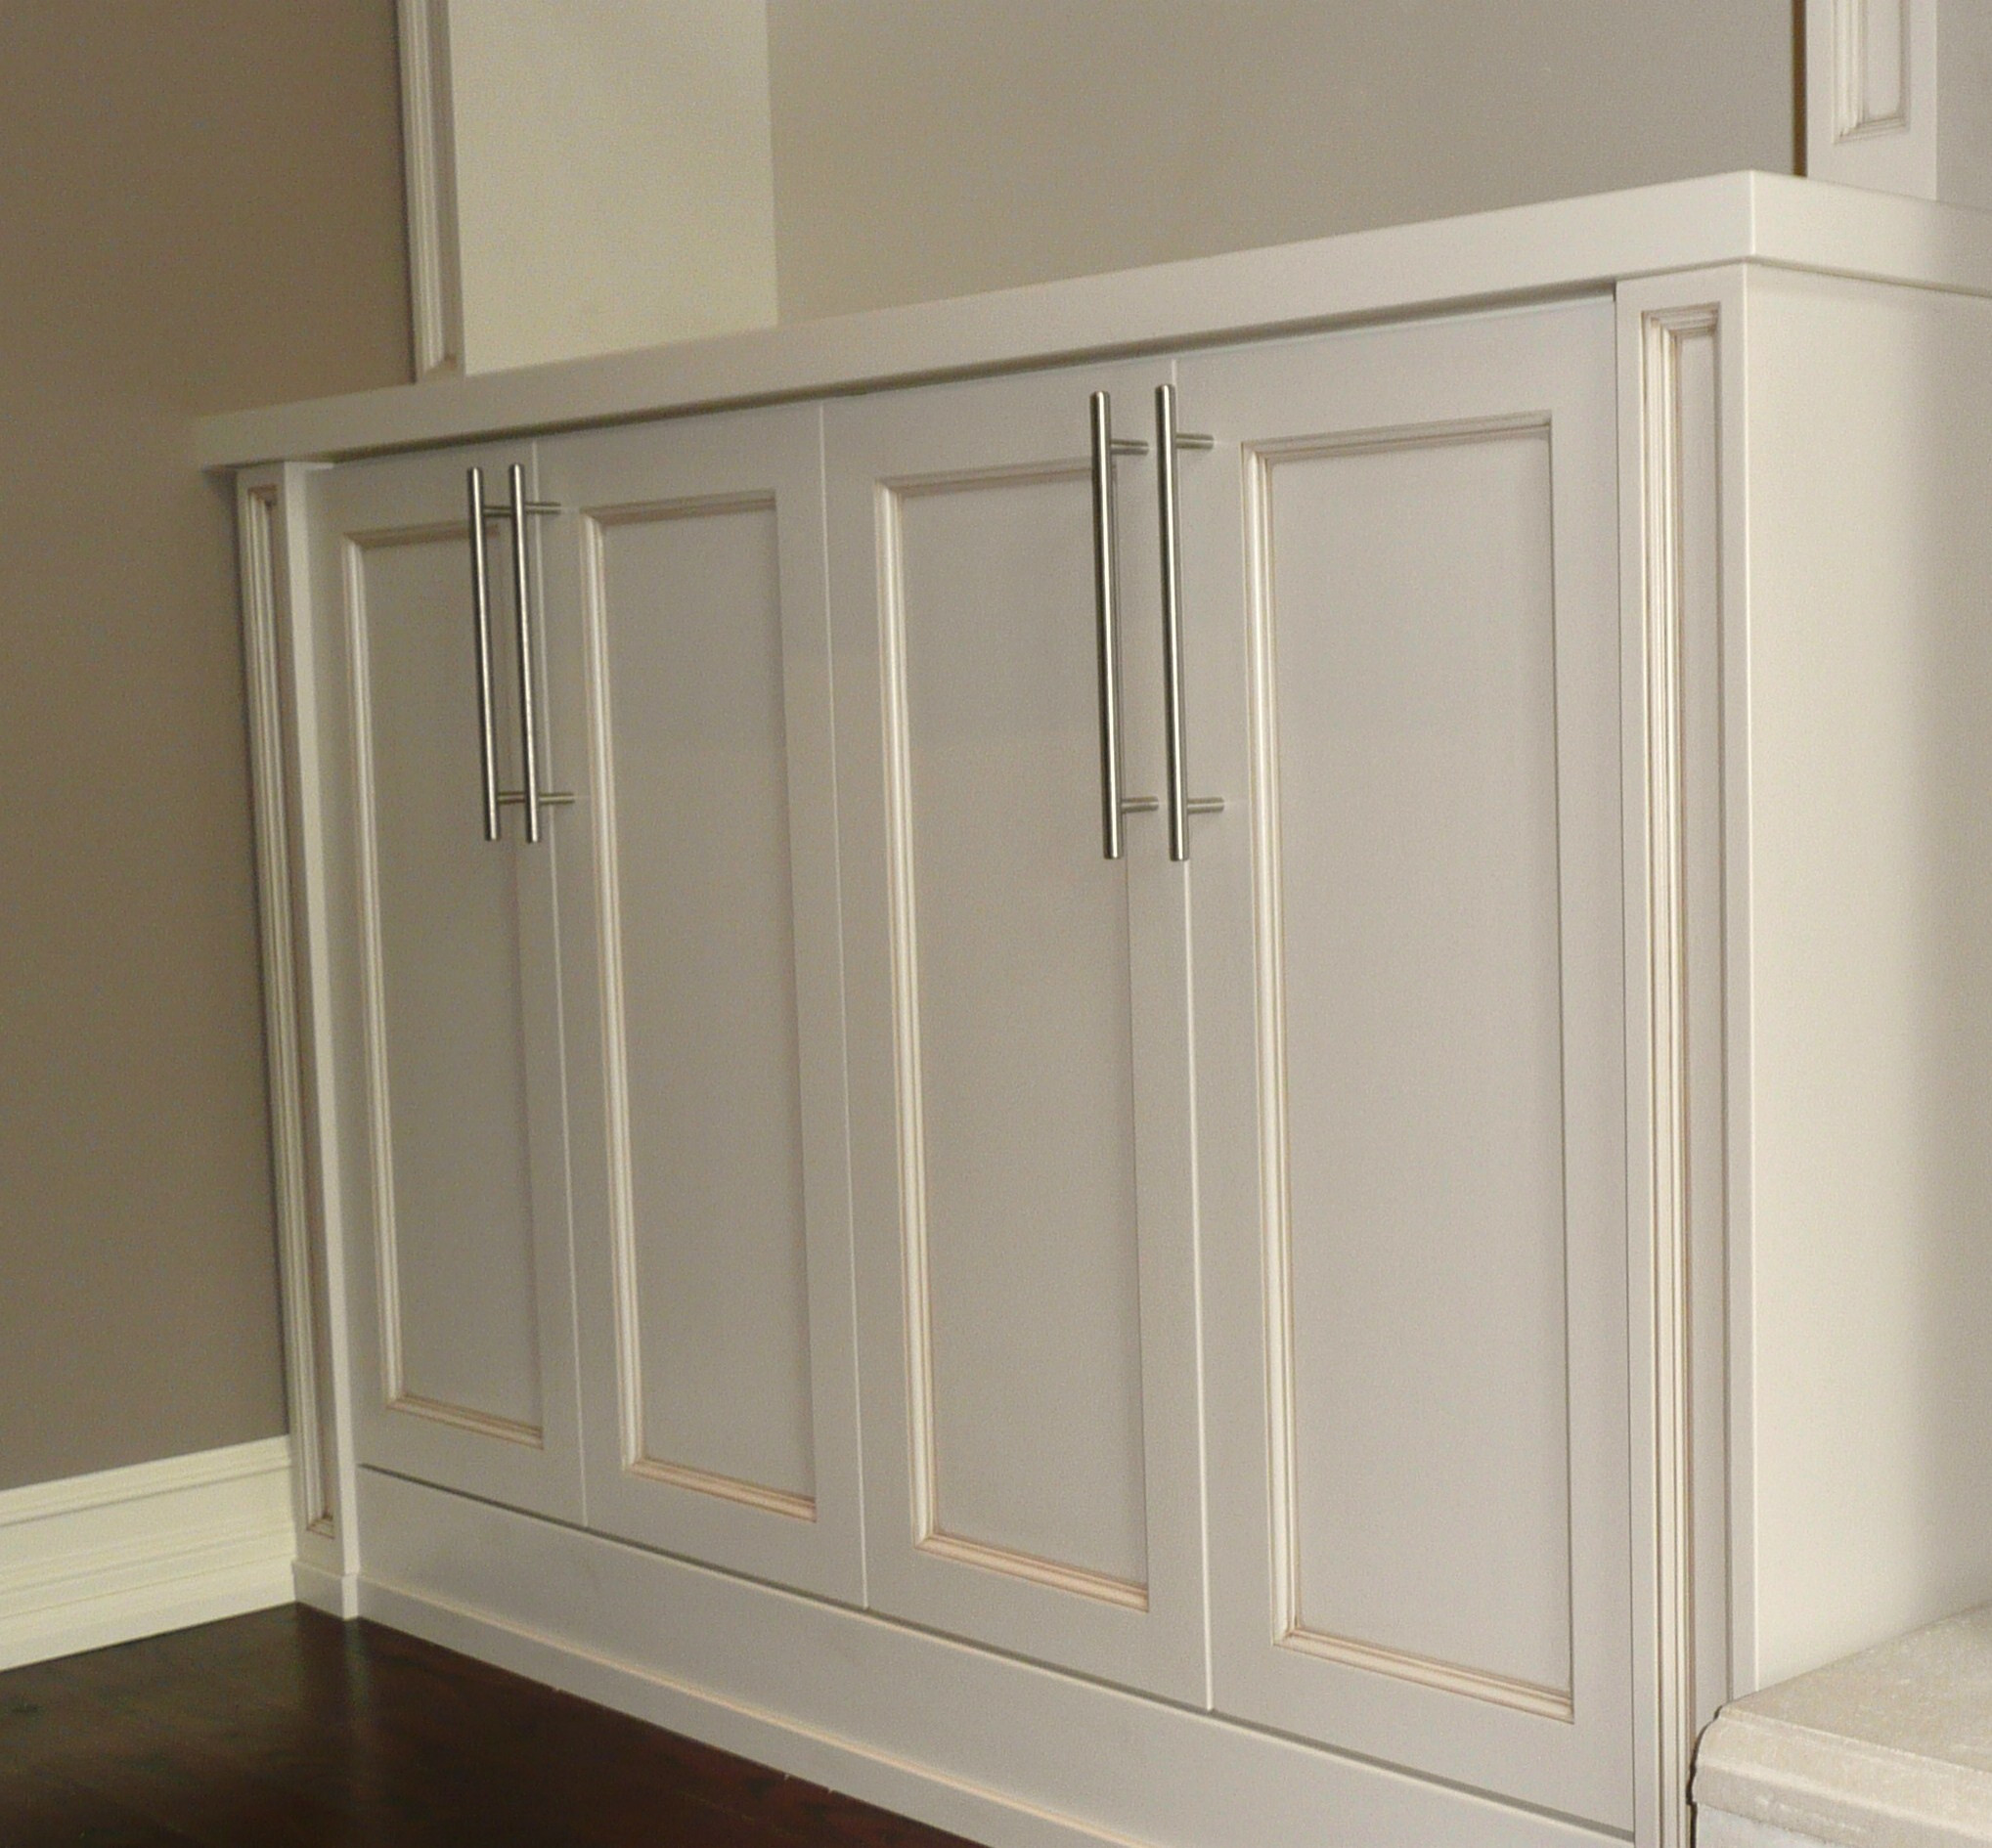 Built-in Units around Fireplace